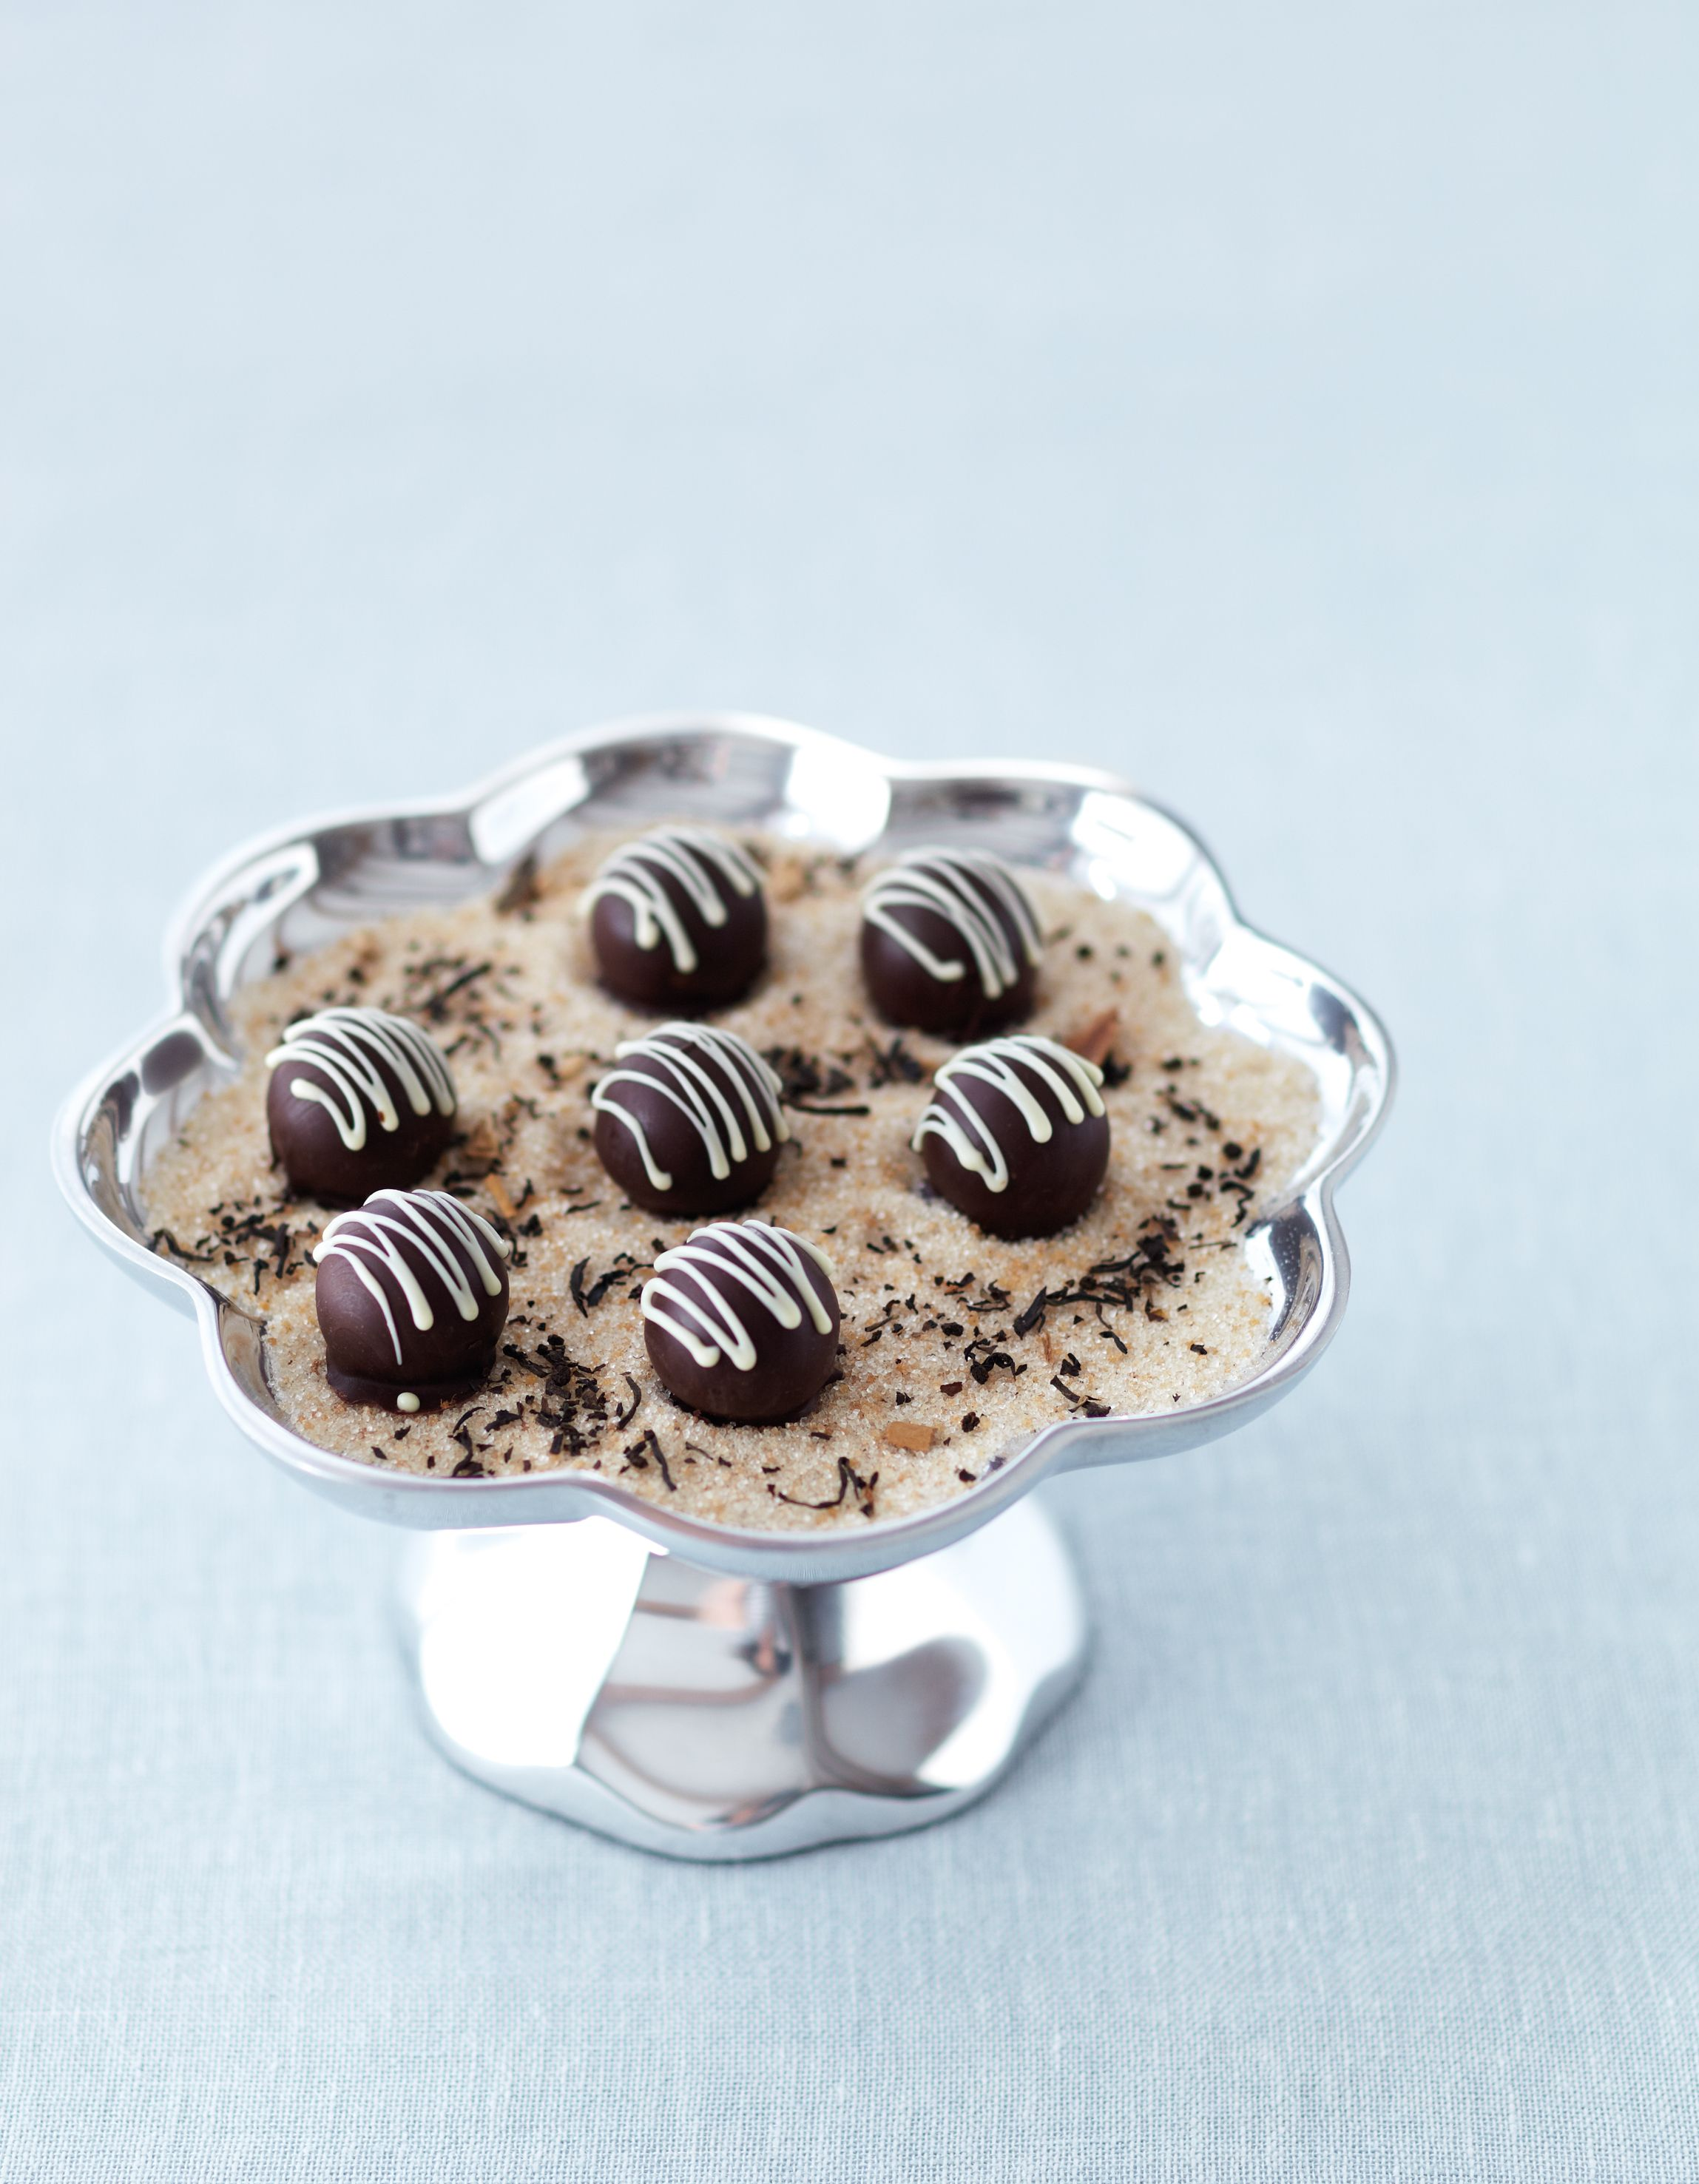 This recipe comes to us from Natasha MacAller, from her book Vanilla Table--The essence of exquisite cooking from the world's best chefs.   Pepper, spice and vanilla-infused cream with milk chocolate – a truffle for now, and one for later!